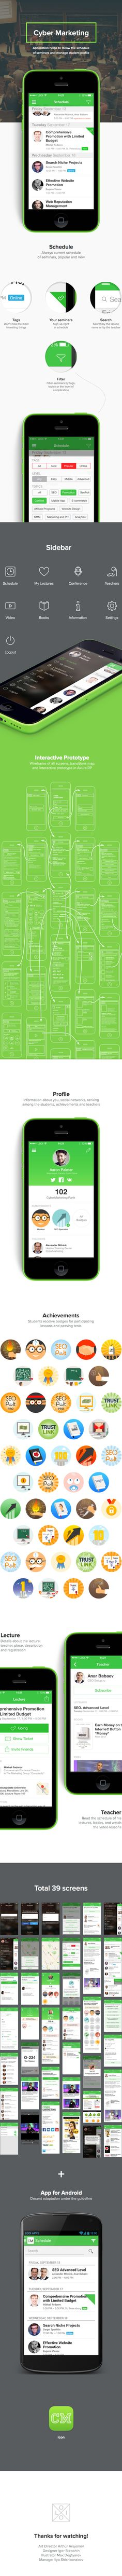 CyberMarketing App